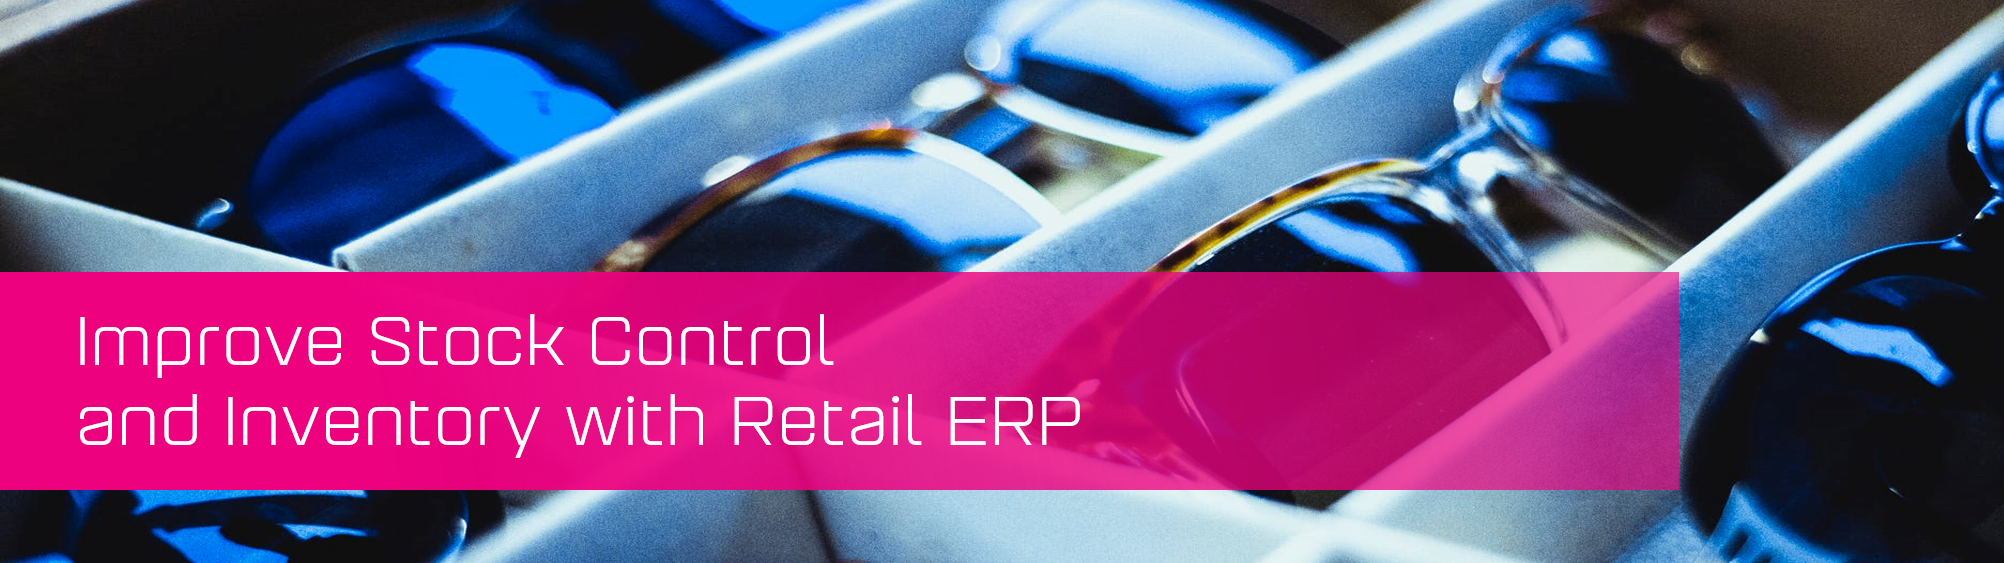 KCS SA - Blog - Improve stock control with retail ERP banner image